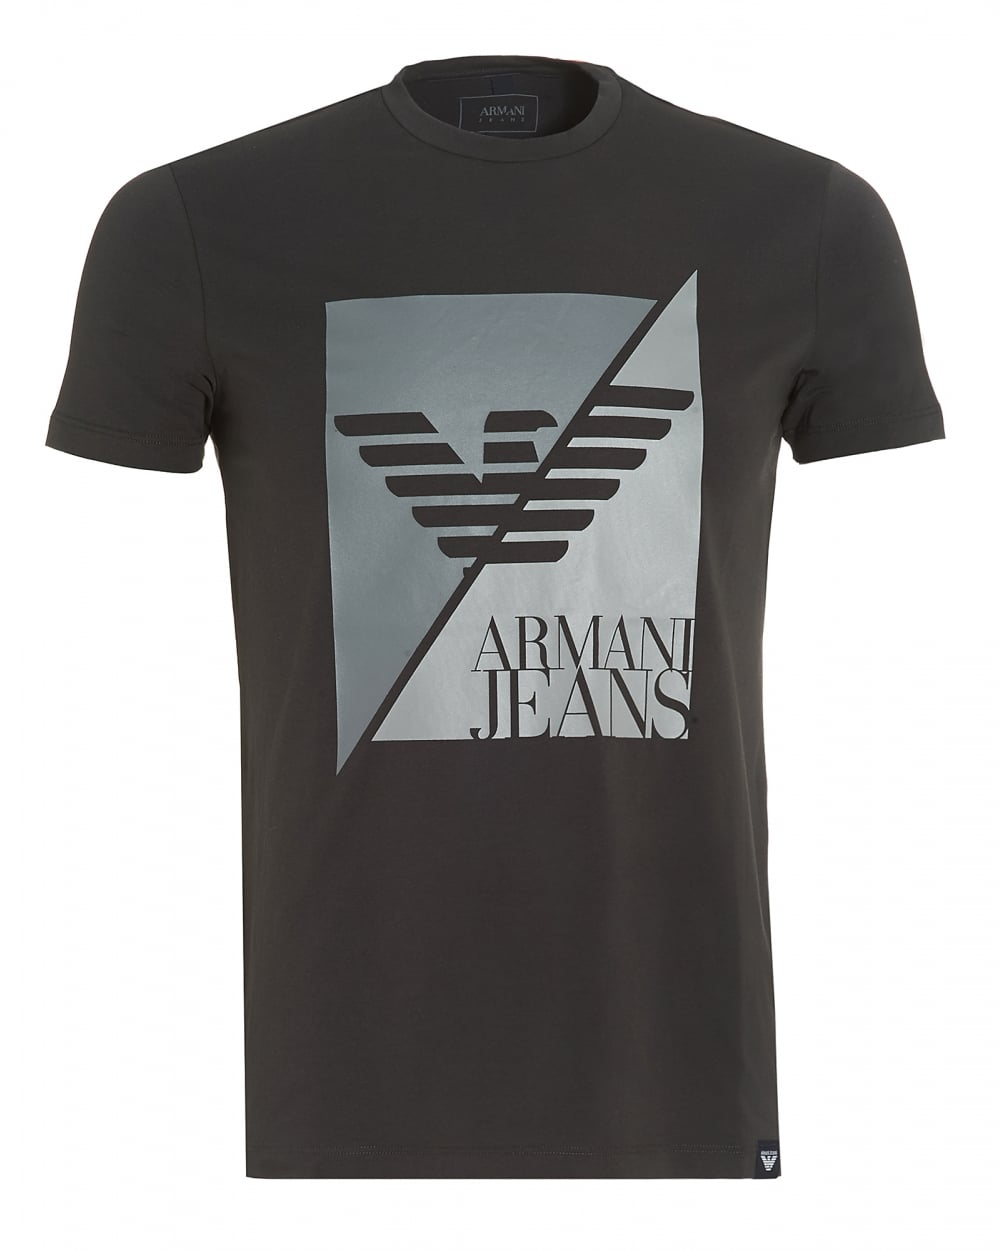 167f5cbc0c7a Armani Jeans Mens Black T-Shirt, Slim-Fit Split Eagle Logo Stretch Tee